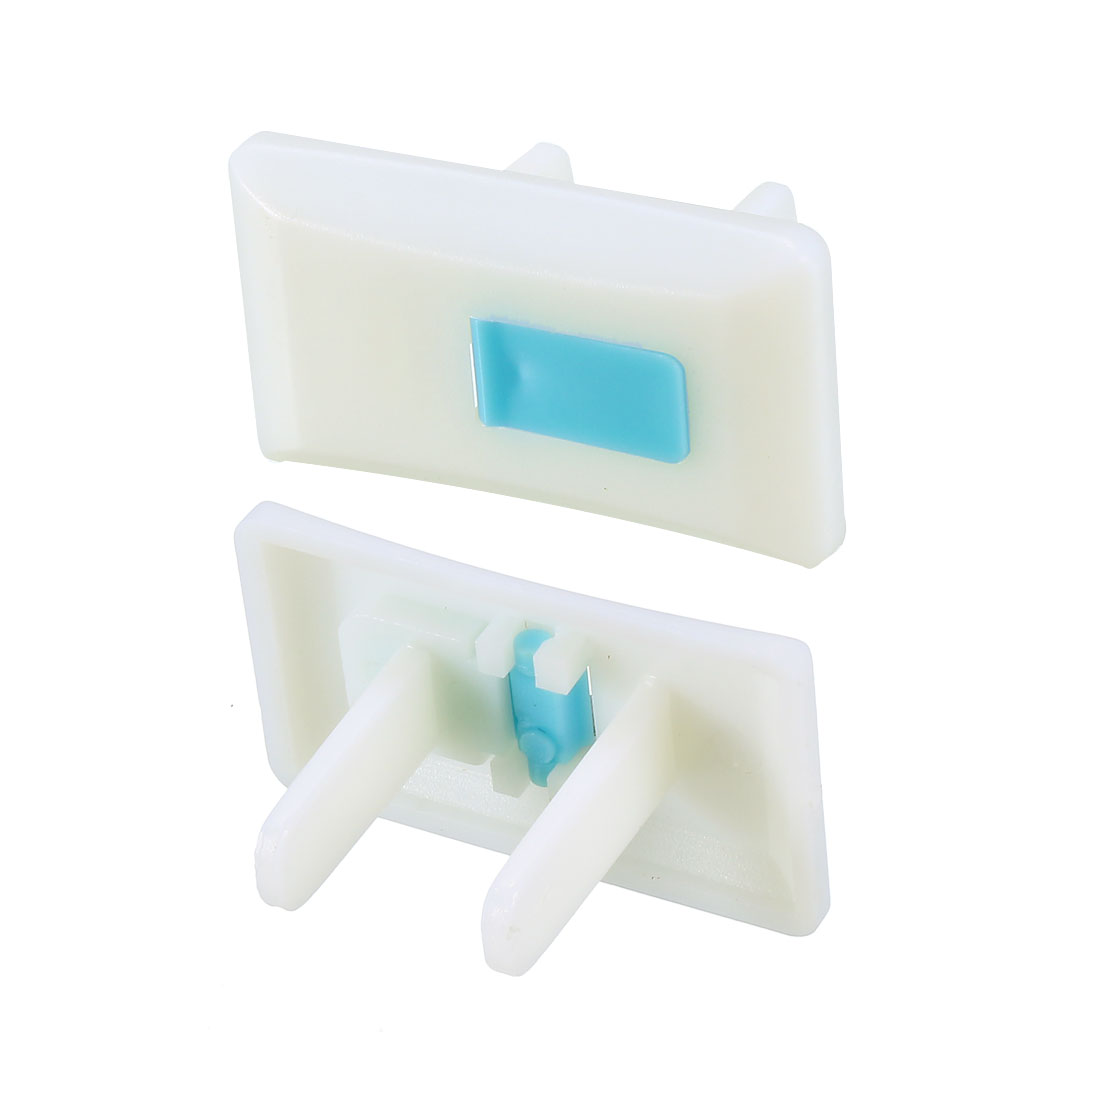 US Stand Power Socket Covers Durable Electrical Protector Cap Blue 55 Pcs